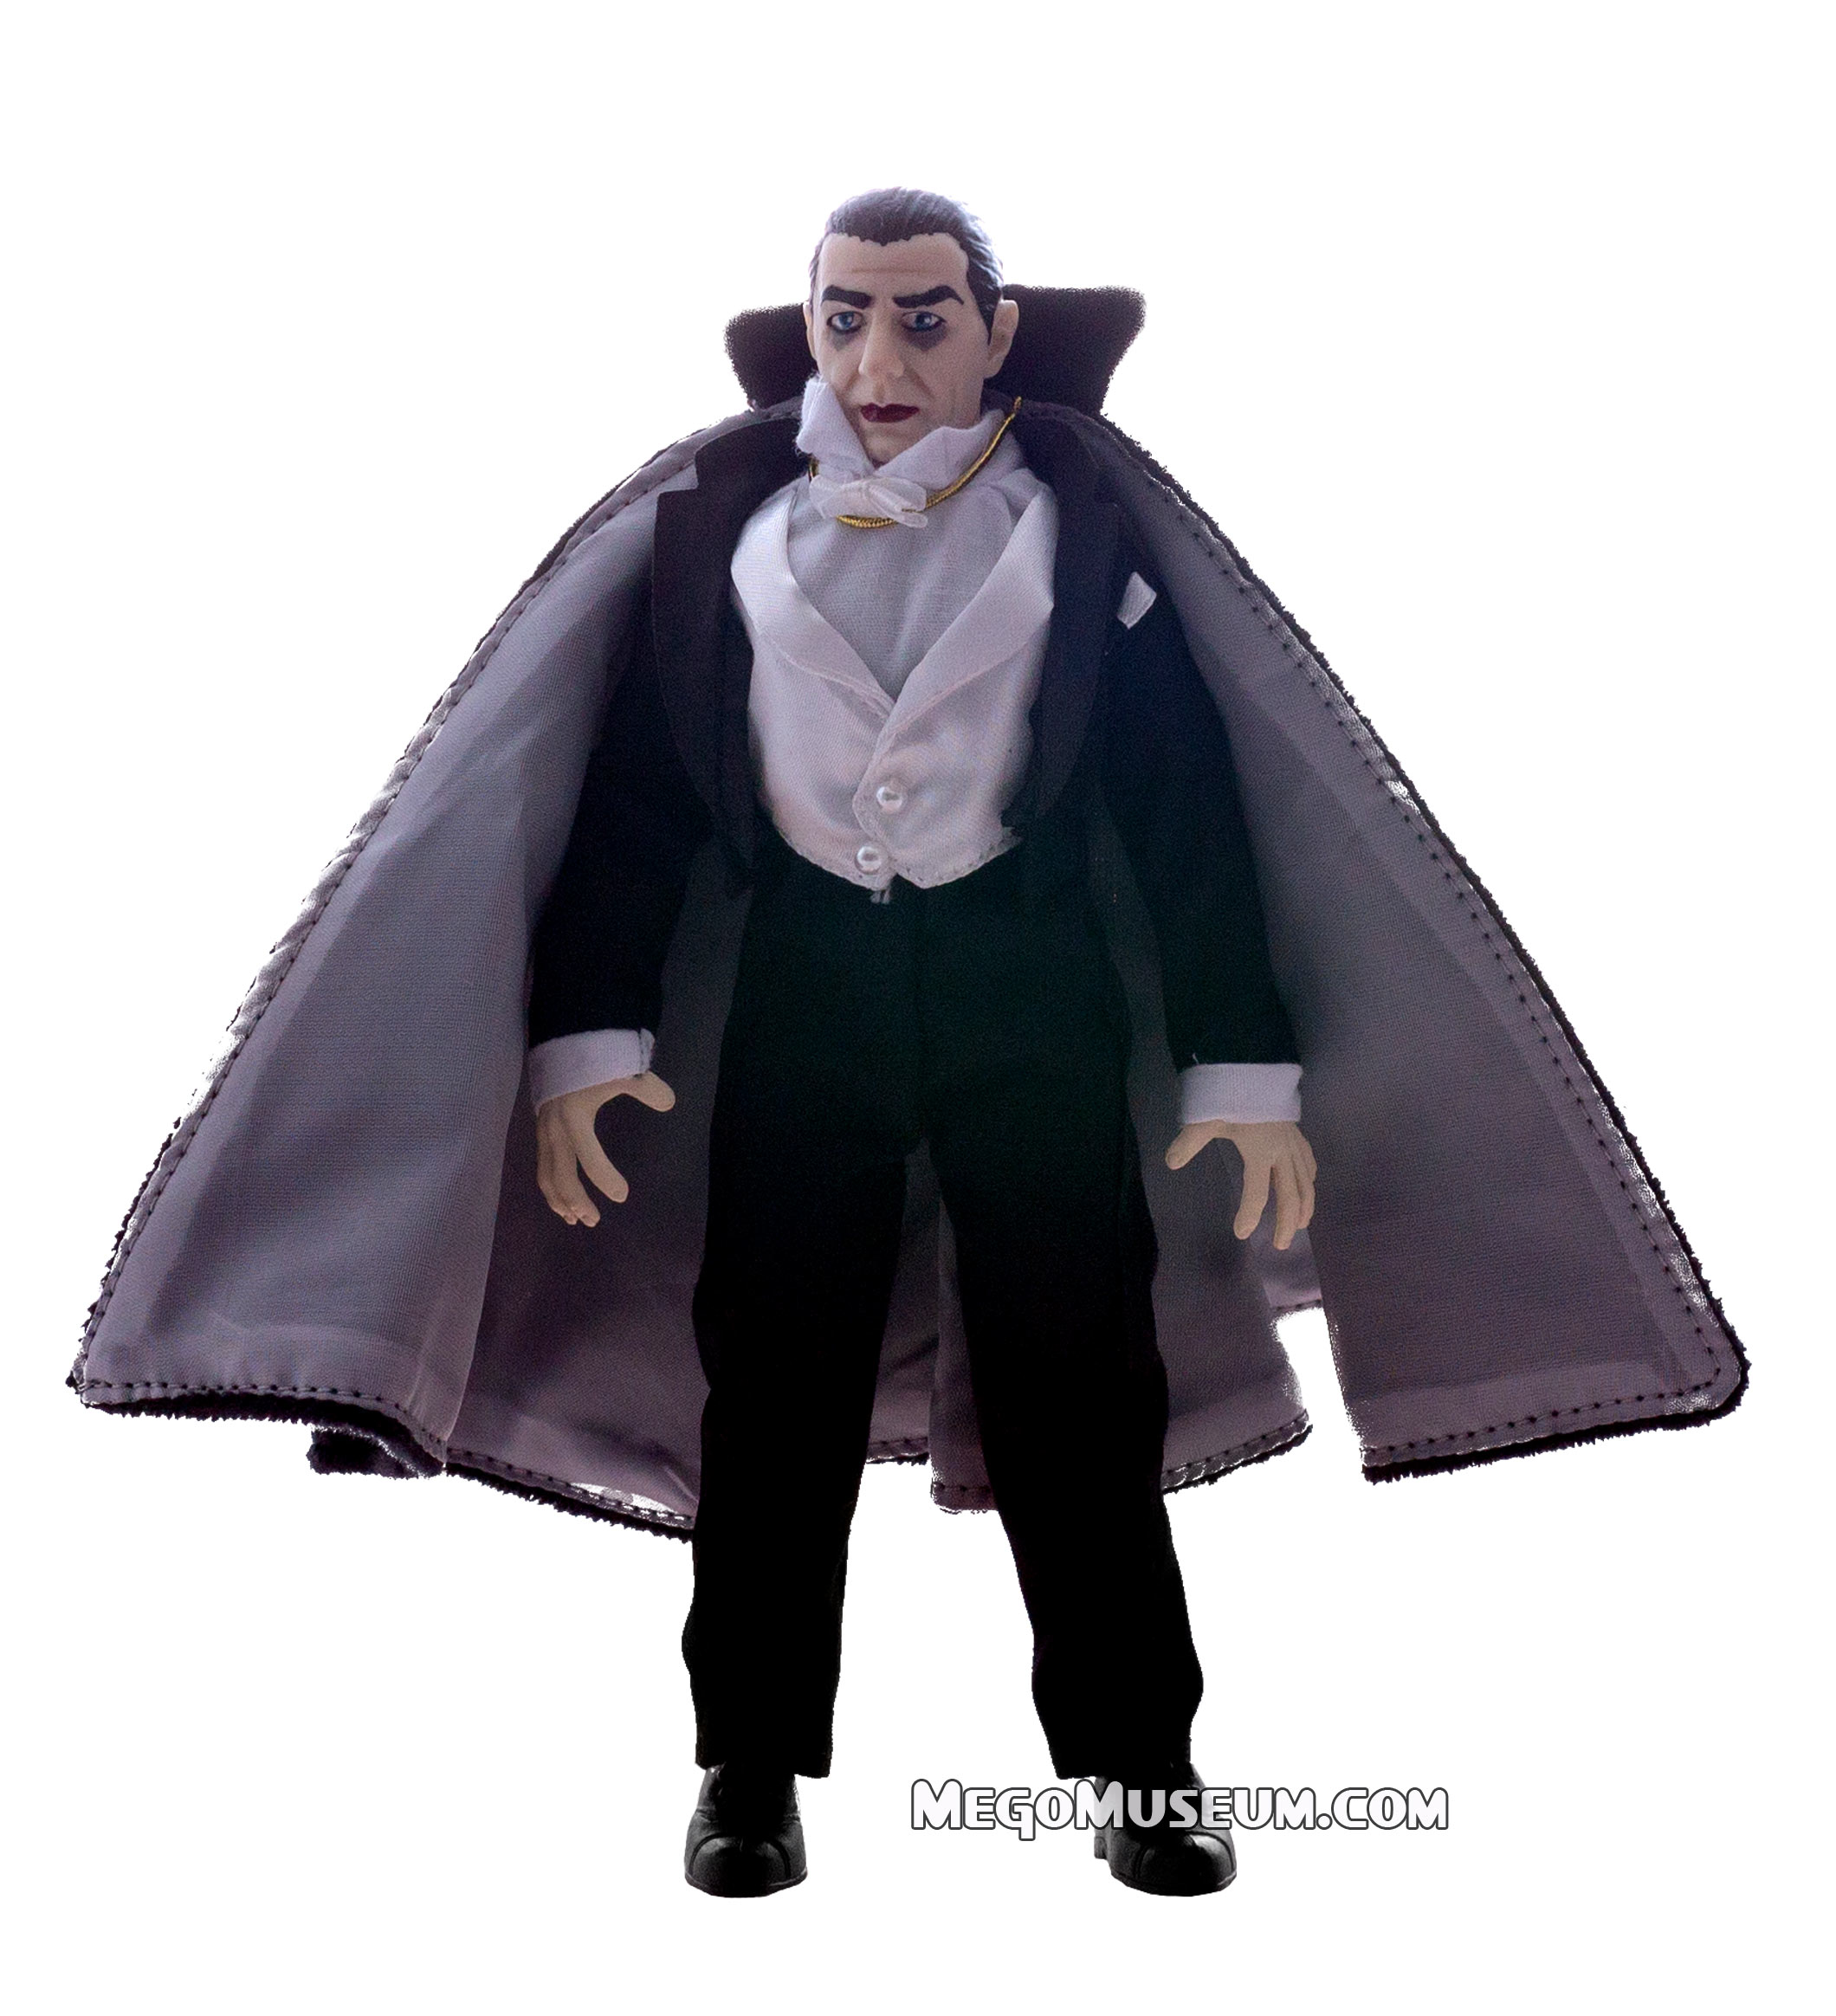 Mego Bela Lugosi as Dracula figure coming to target